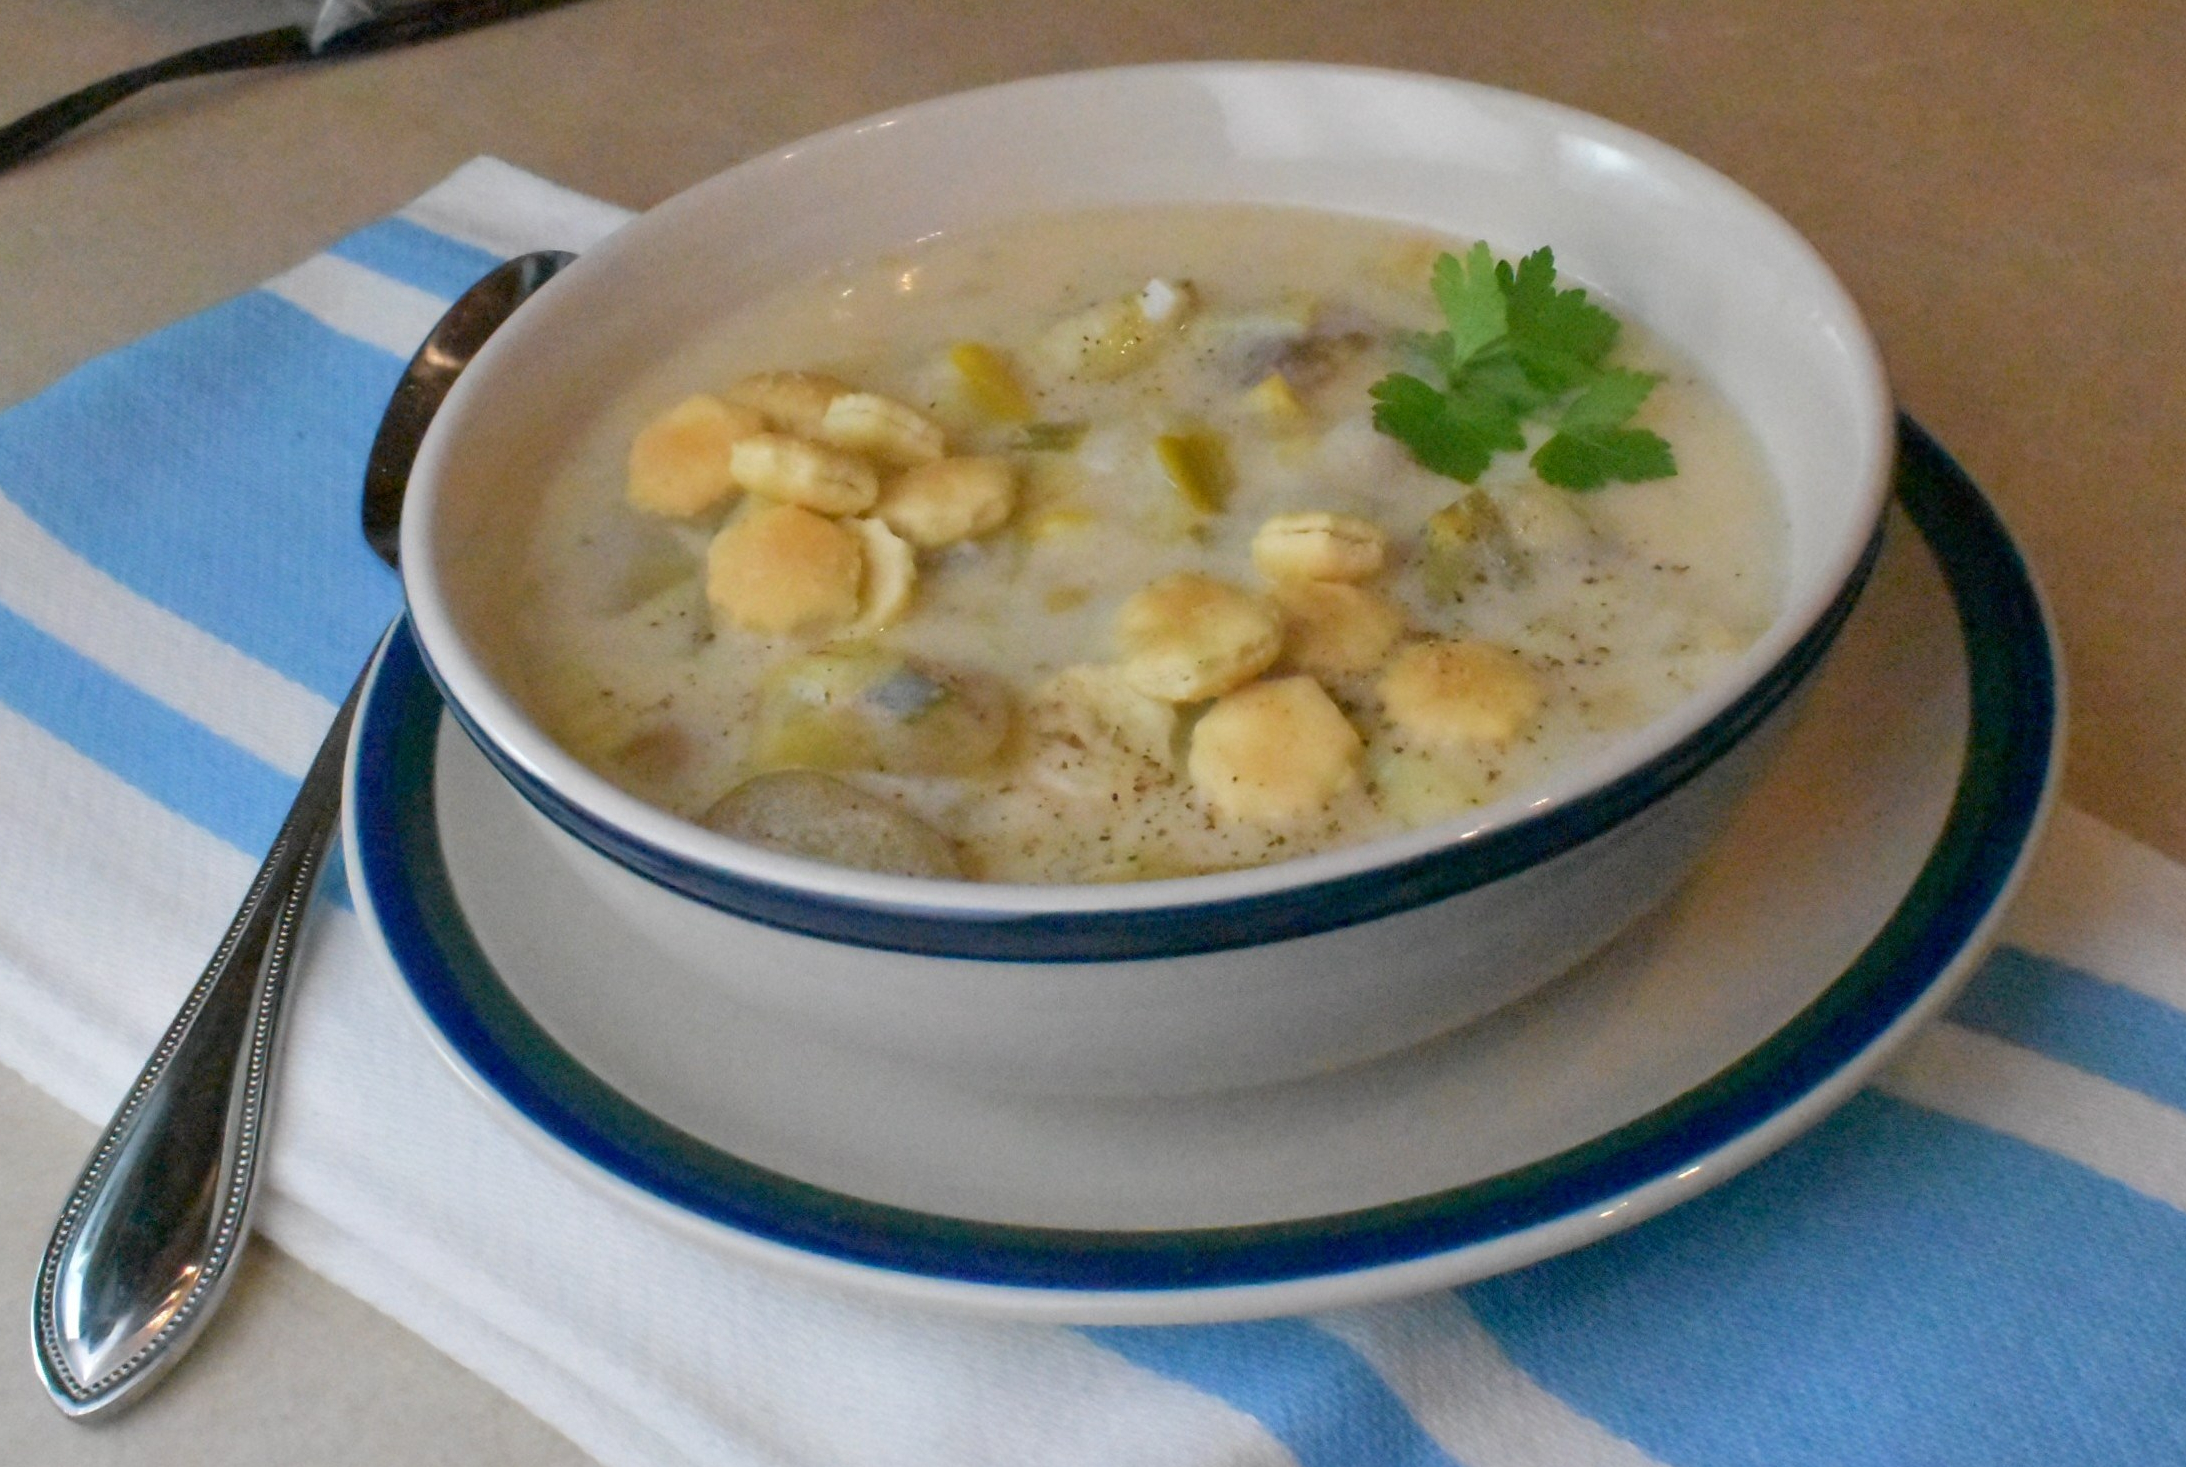 Creamy leek and potato chowder